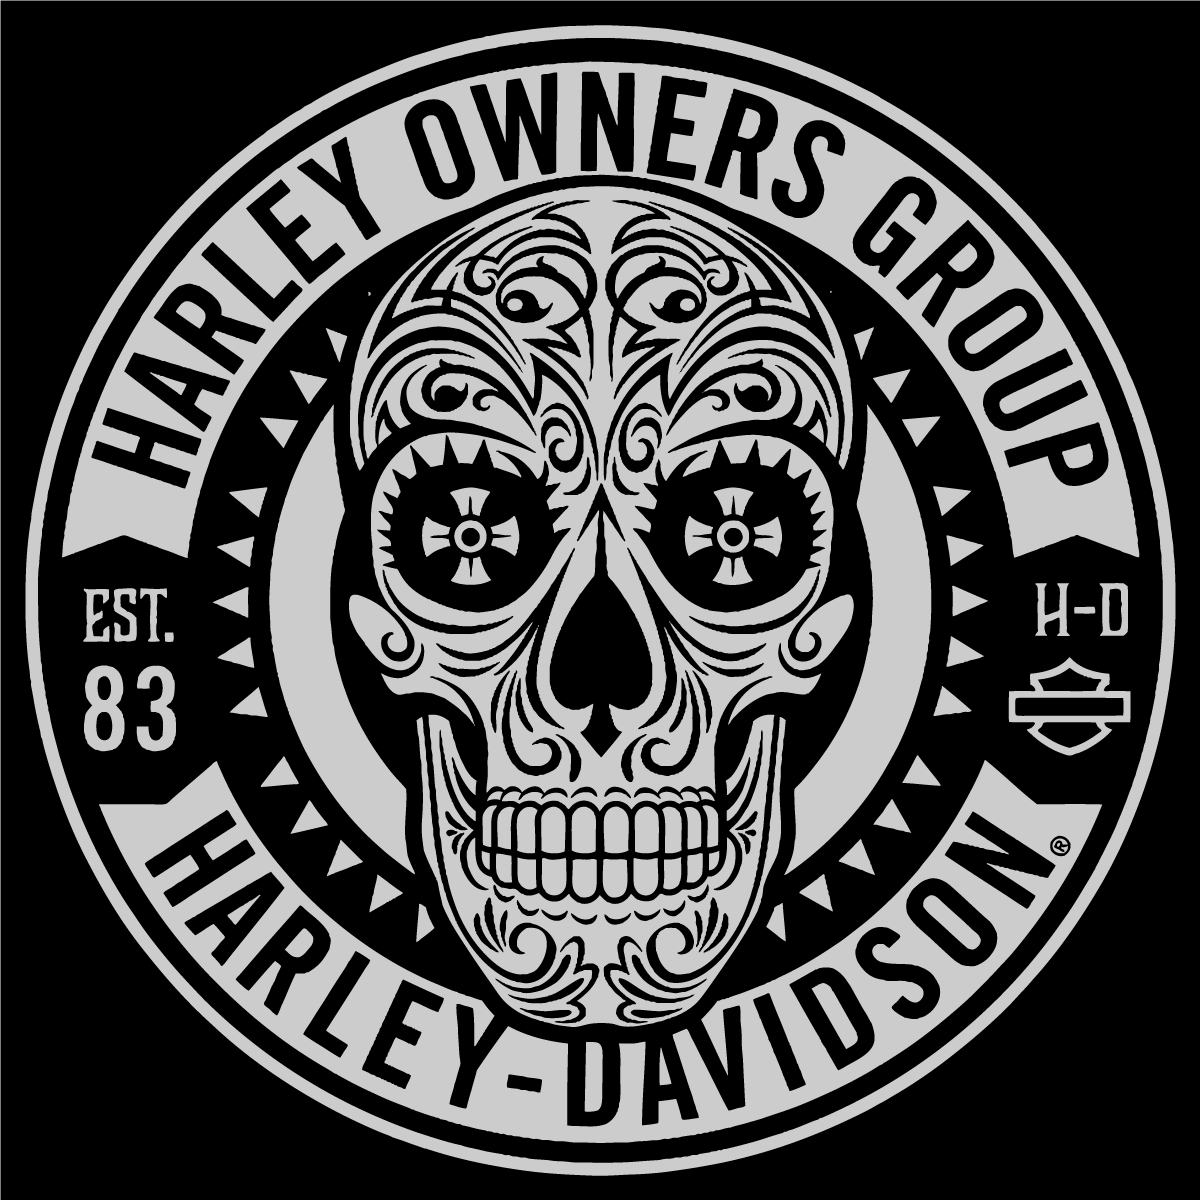 1200x1200 Harley Davidson Owners Group Skull Logo Vector Patch Sticker Badge